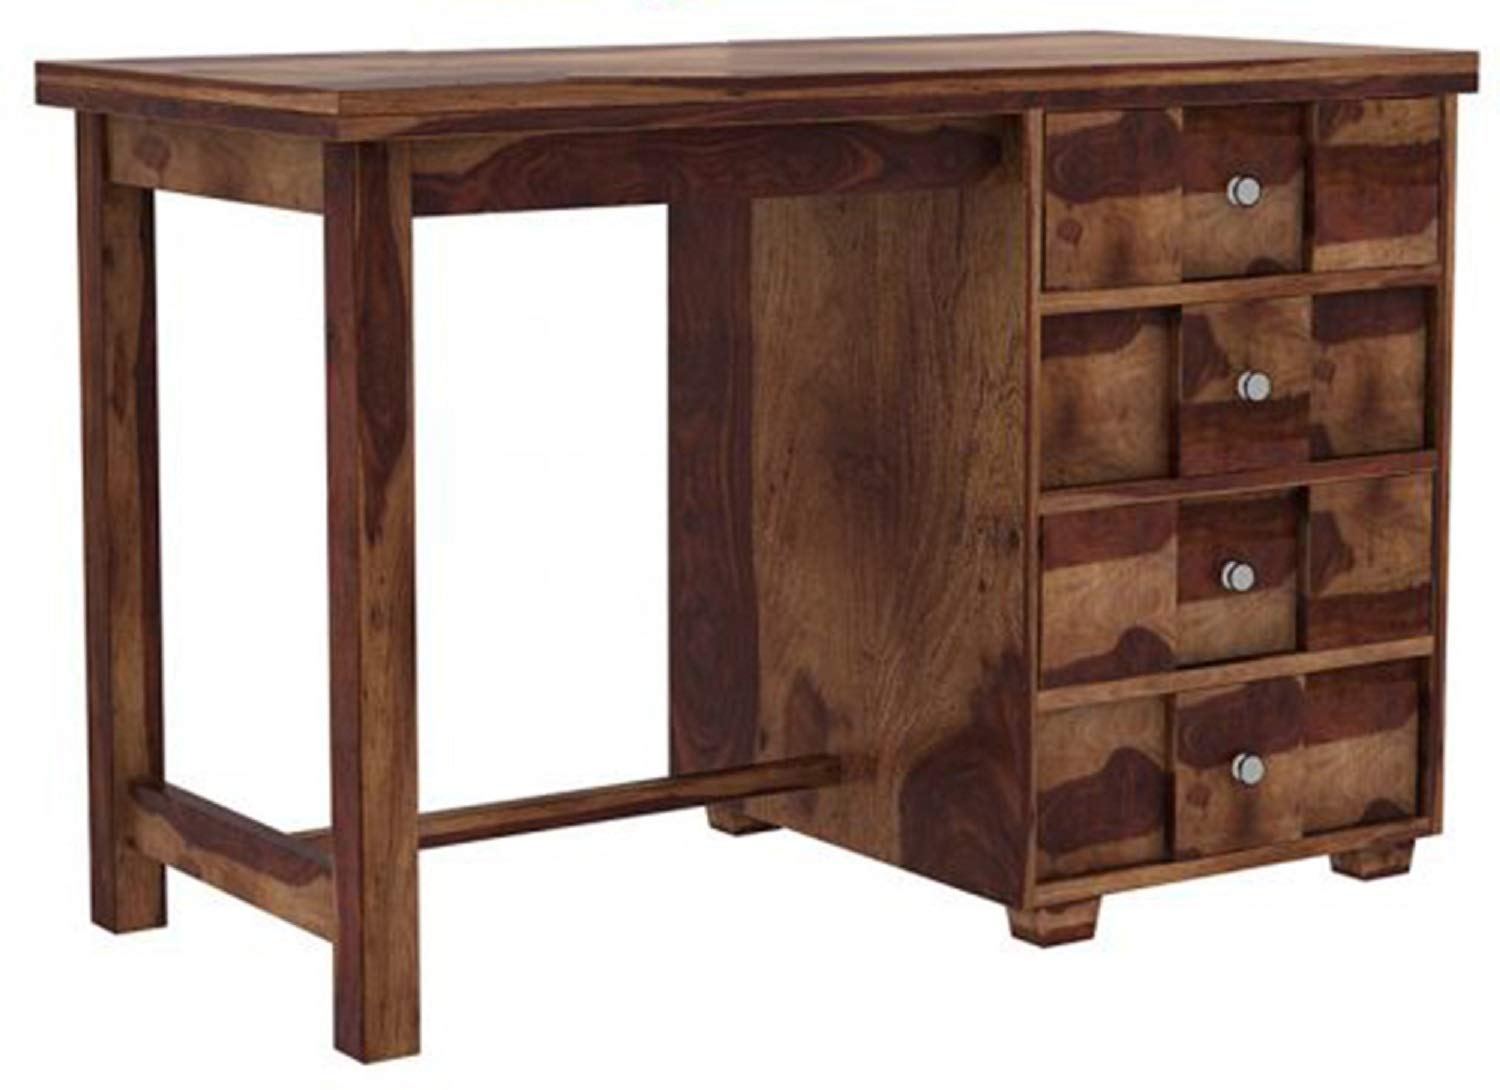 Sheesham Wood Writing Study Desk Computer Table for Home and Office with Drawers (Teak Finish)